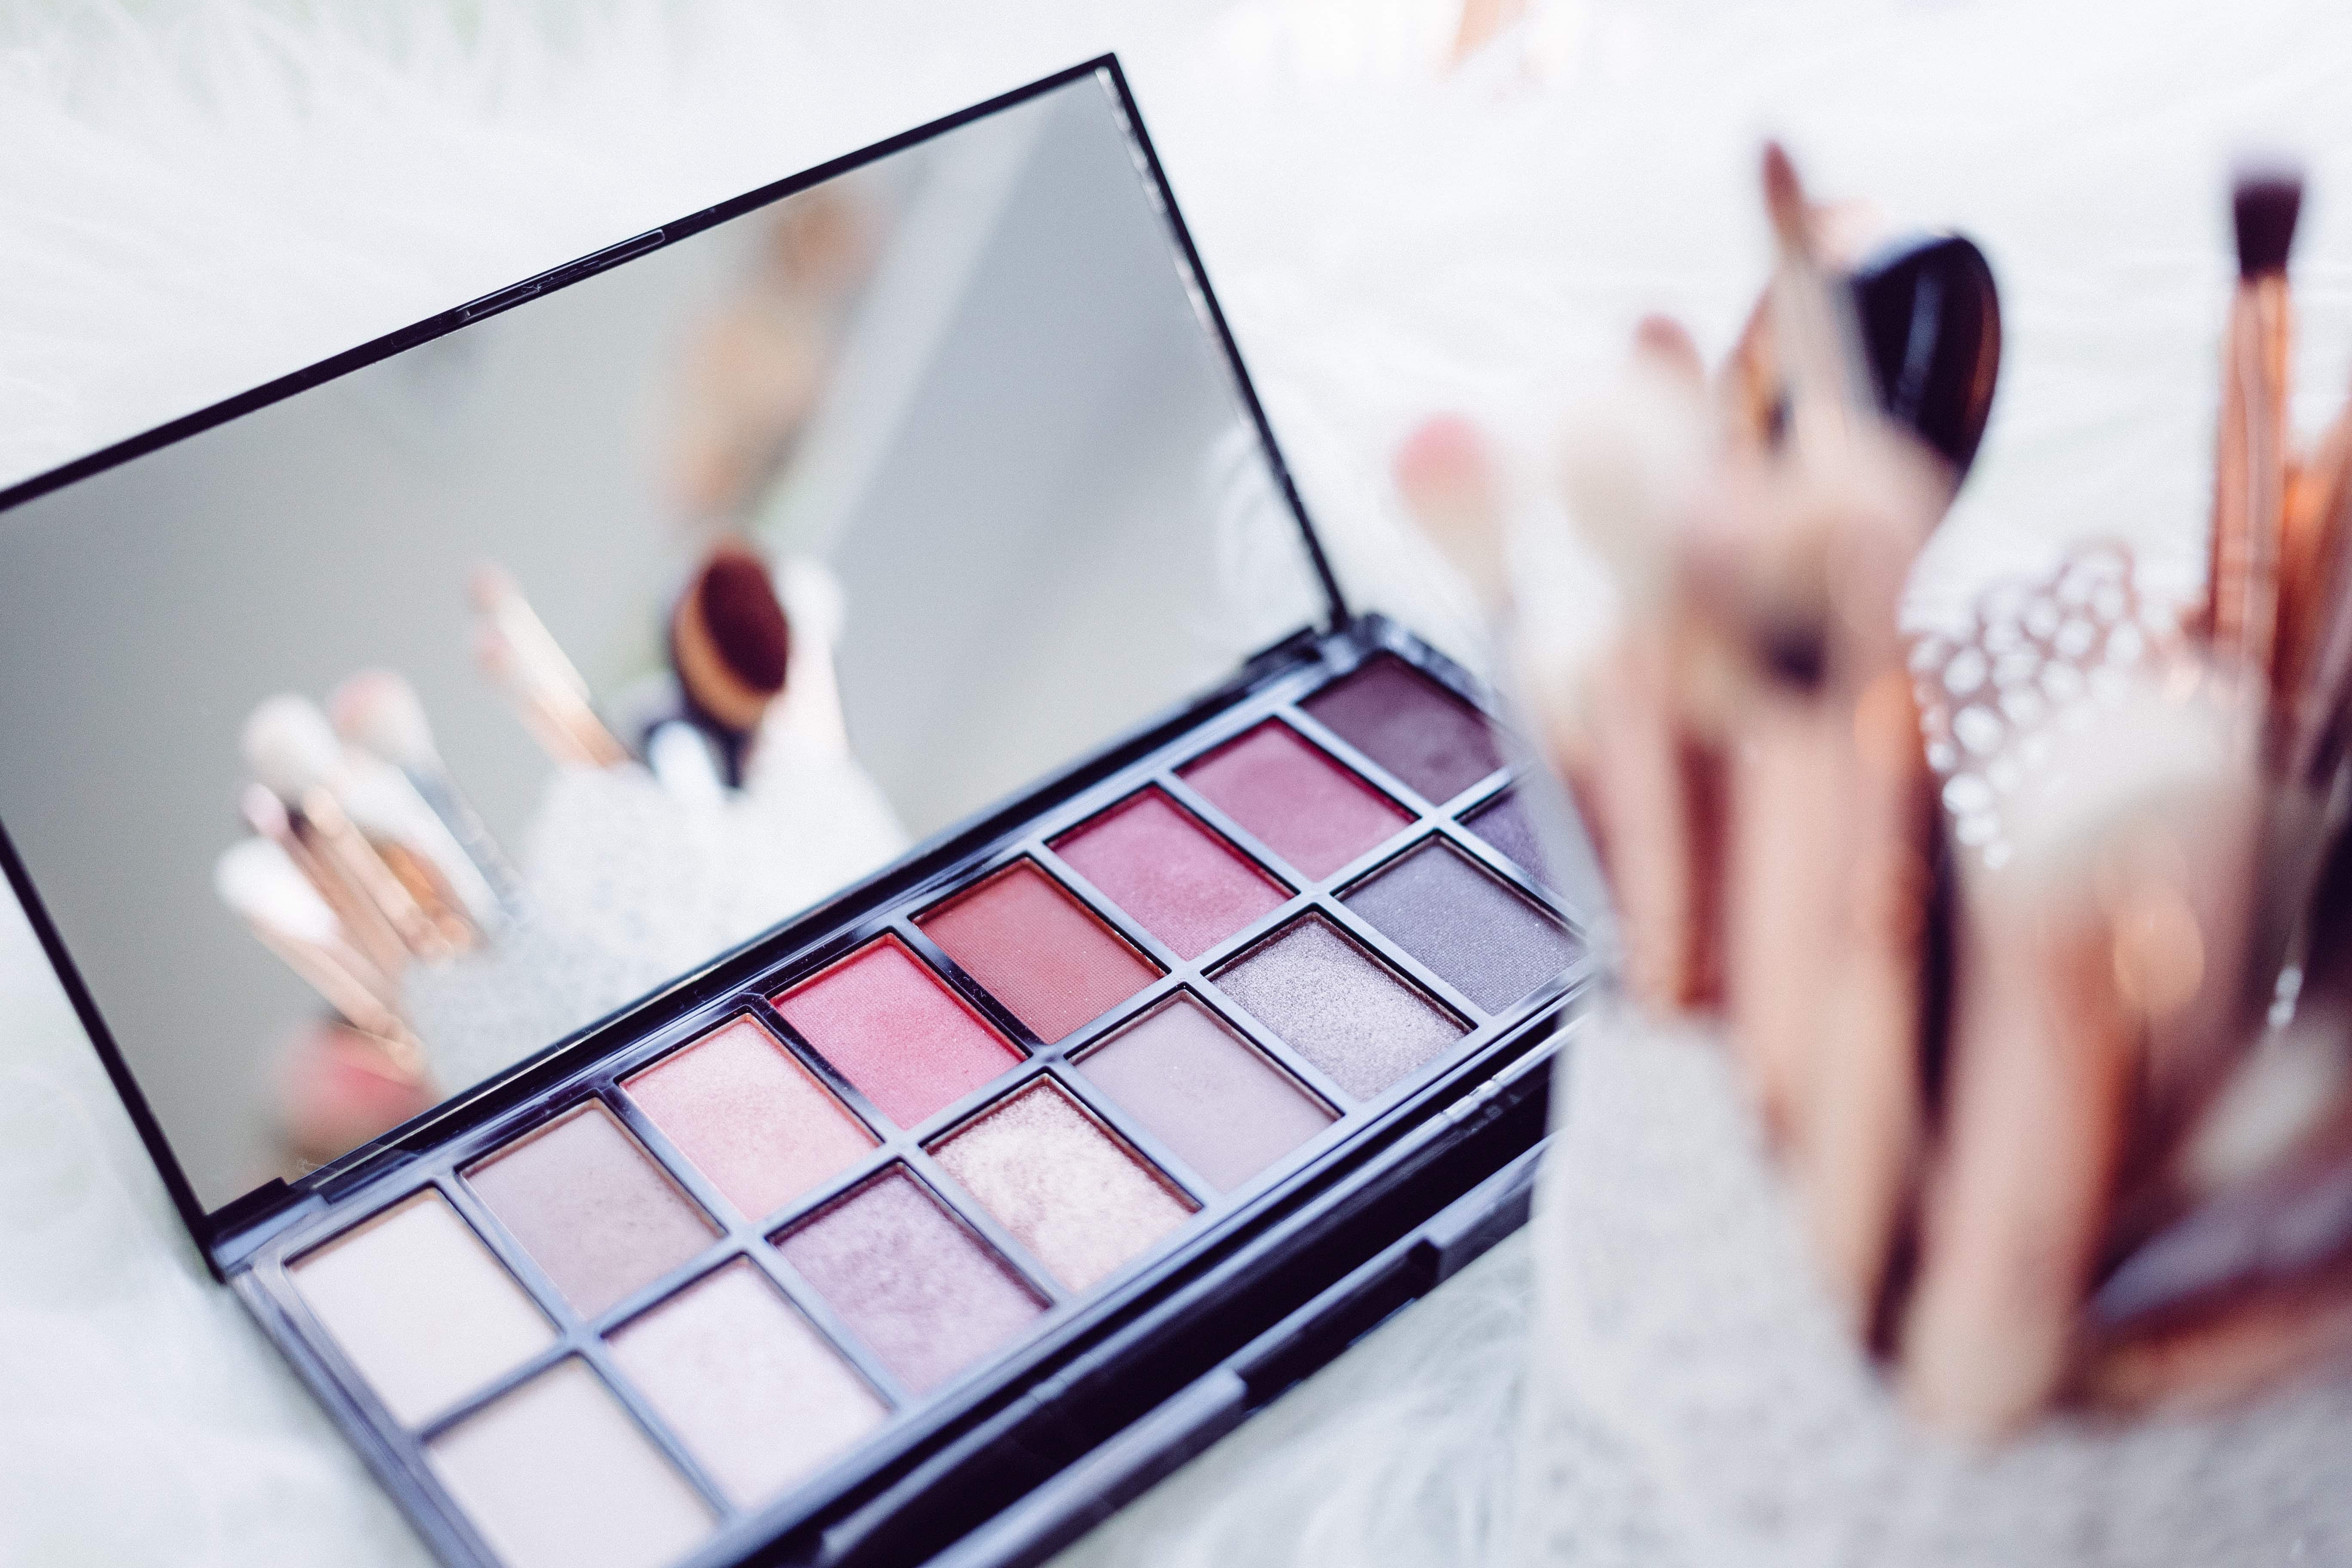 How Many People Do Influencers Influence in the Beauty Market? Set Realistic Goals